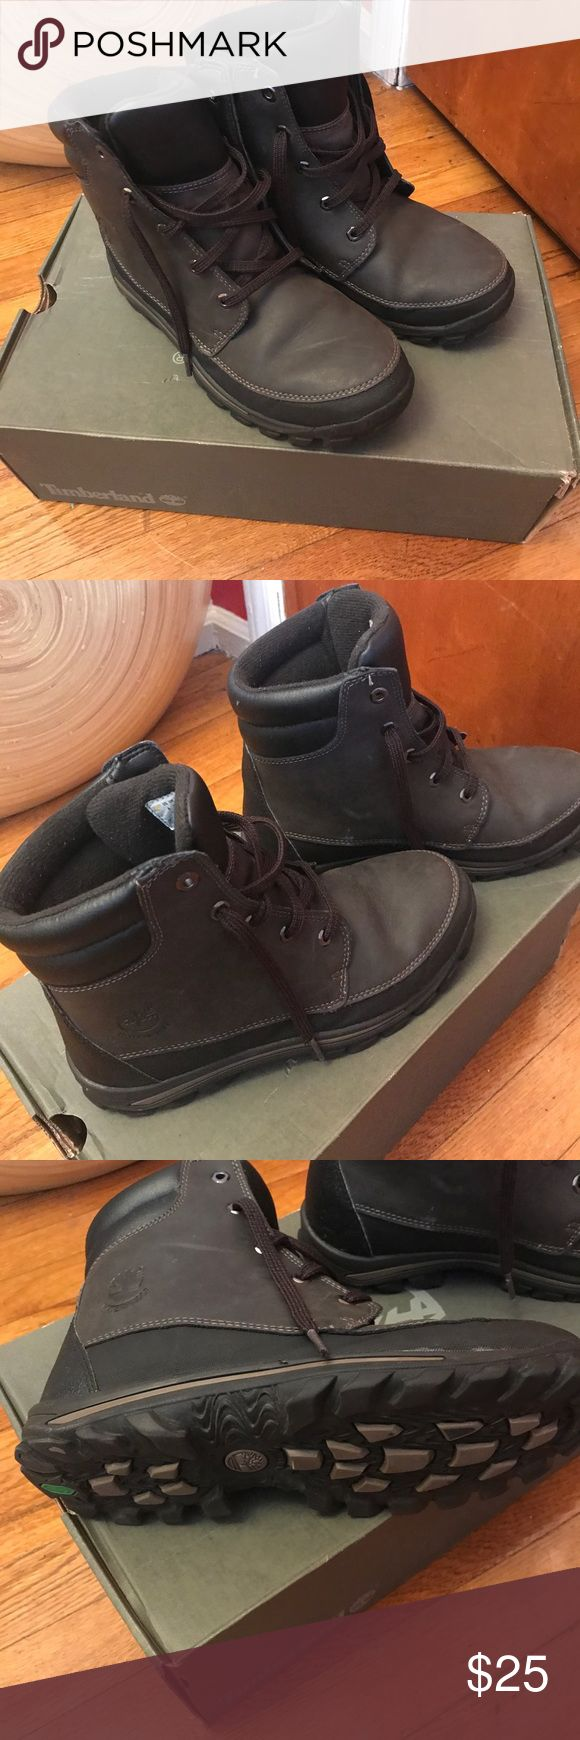 Timberland boots for kids size 6 Timberland boots for kids size 6, black and dark brown color. Great for school in the cold months. Durable. Worn. But still in good condition. Timberland Shoes Boots